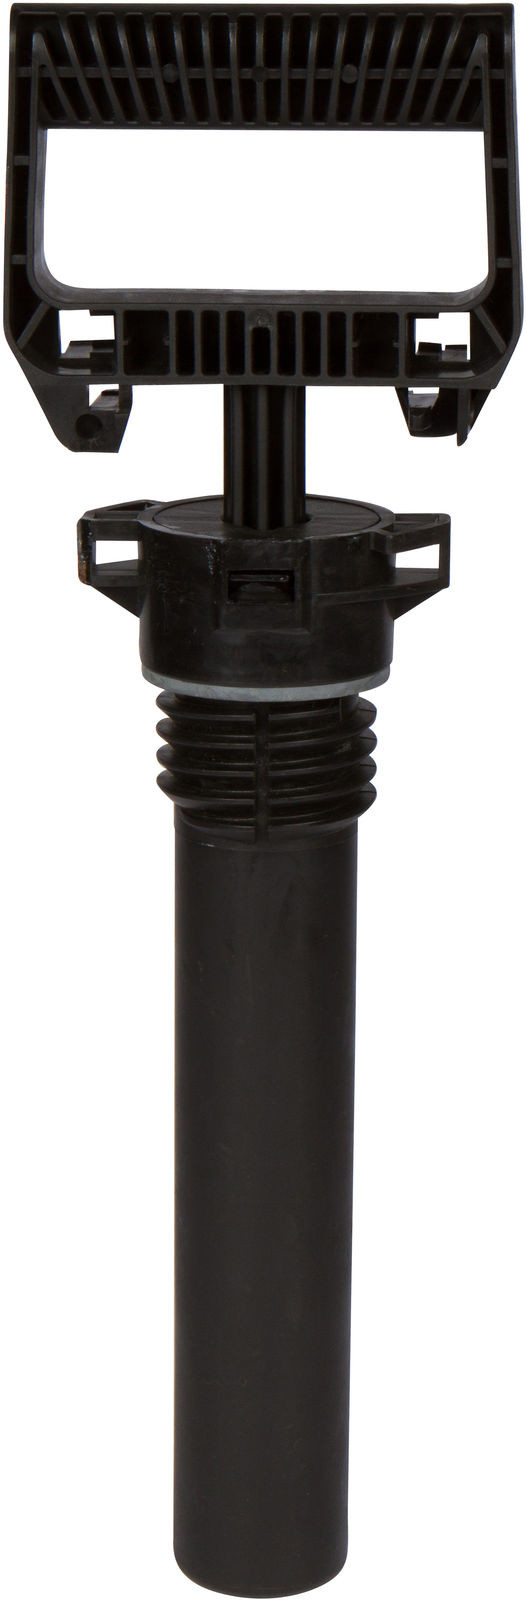 180305 Pump Assy, Black, Complete, ML